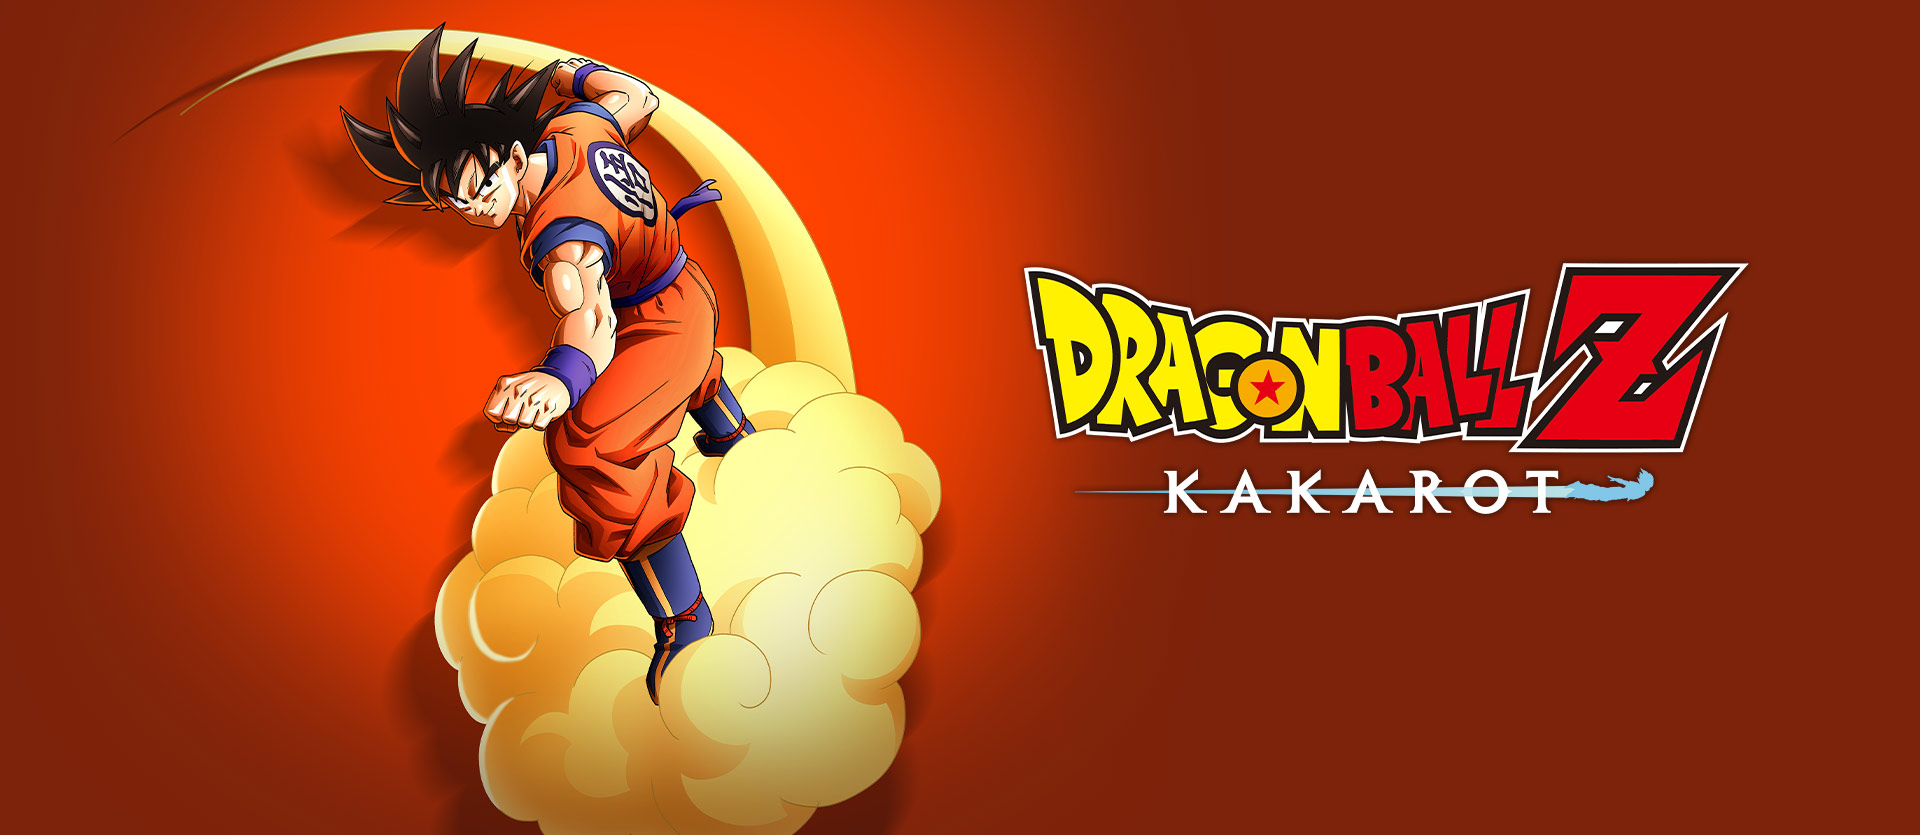 Dragon Ball Z: Kakarot 標誌,與雲朵上的 Goku